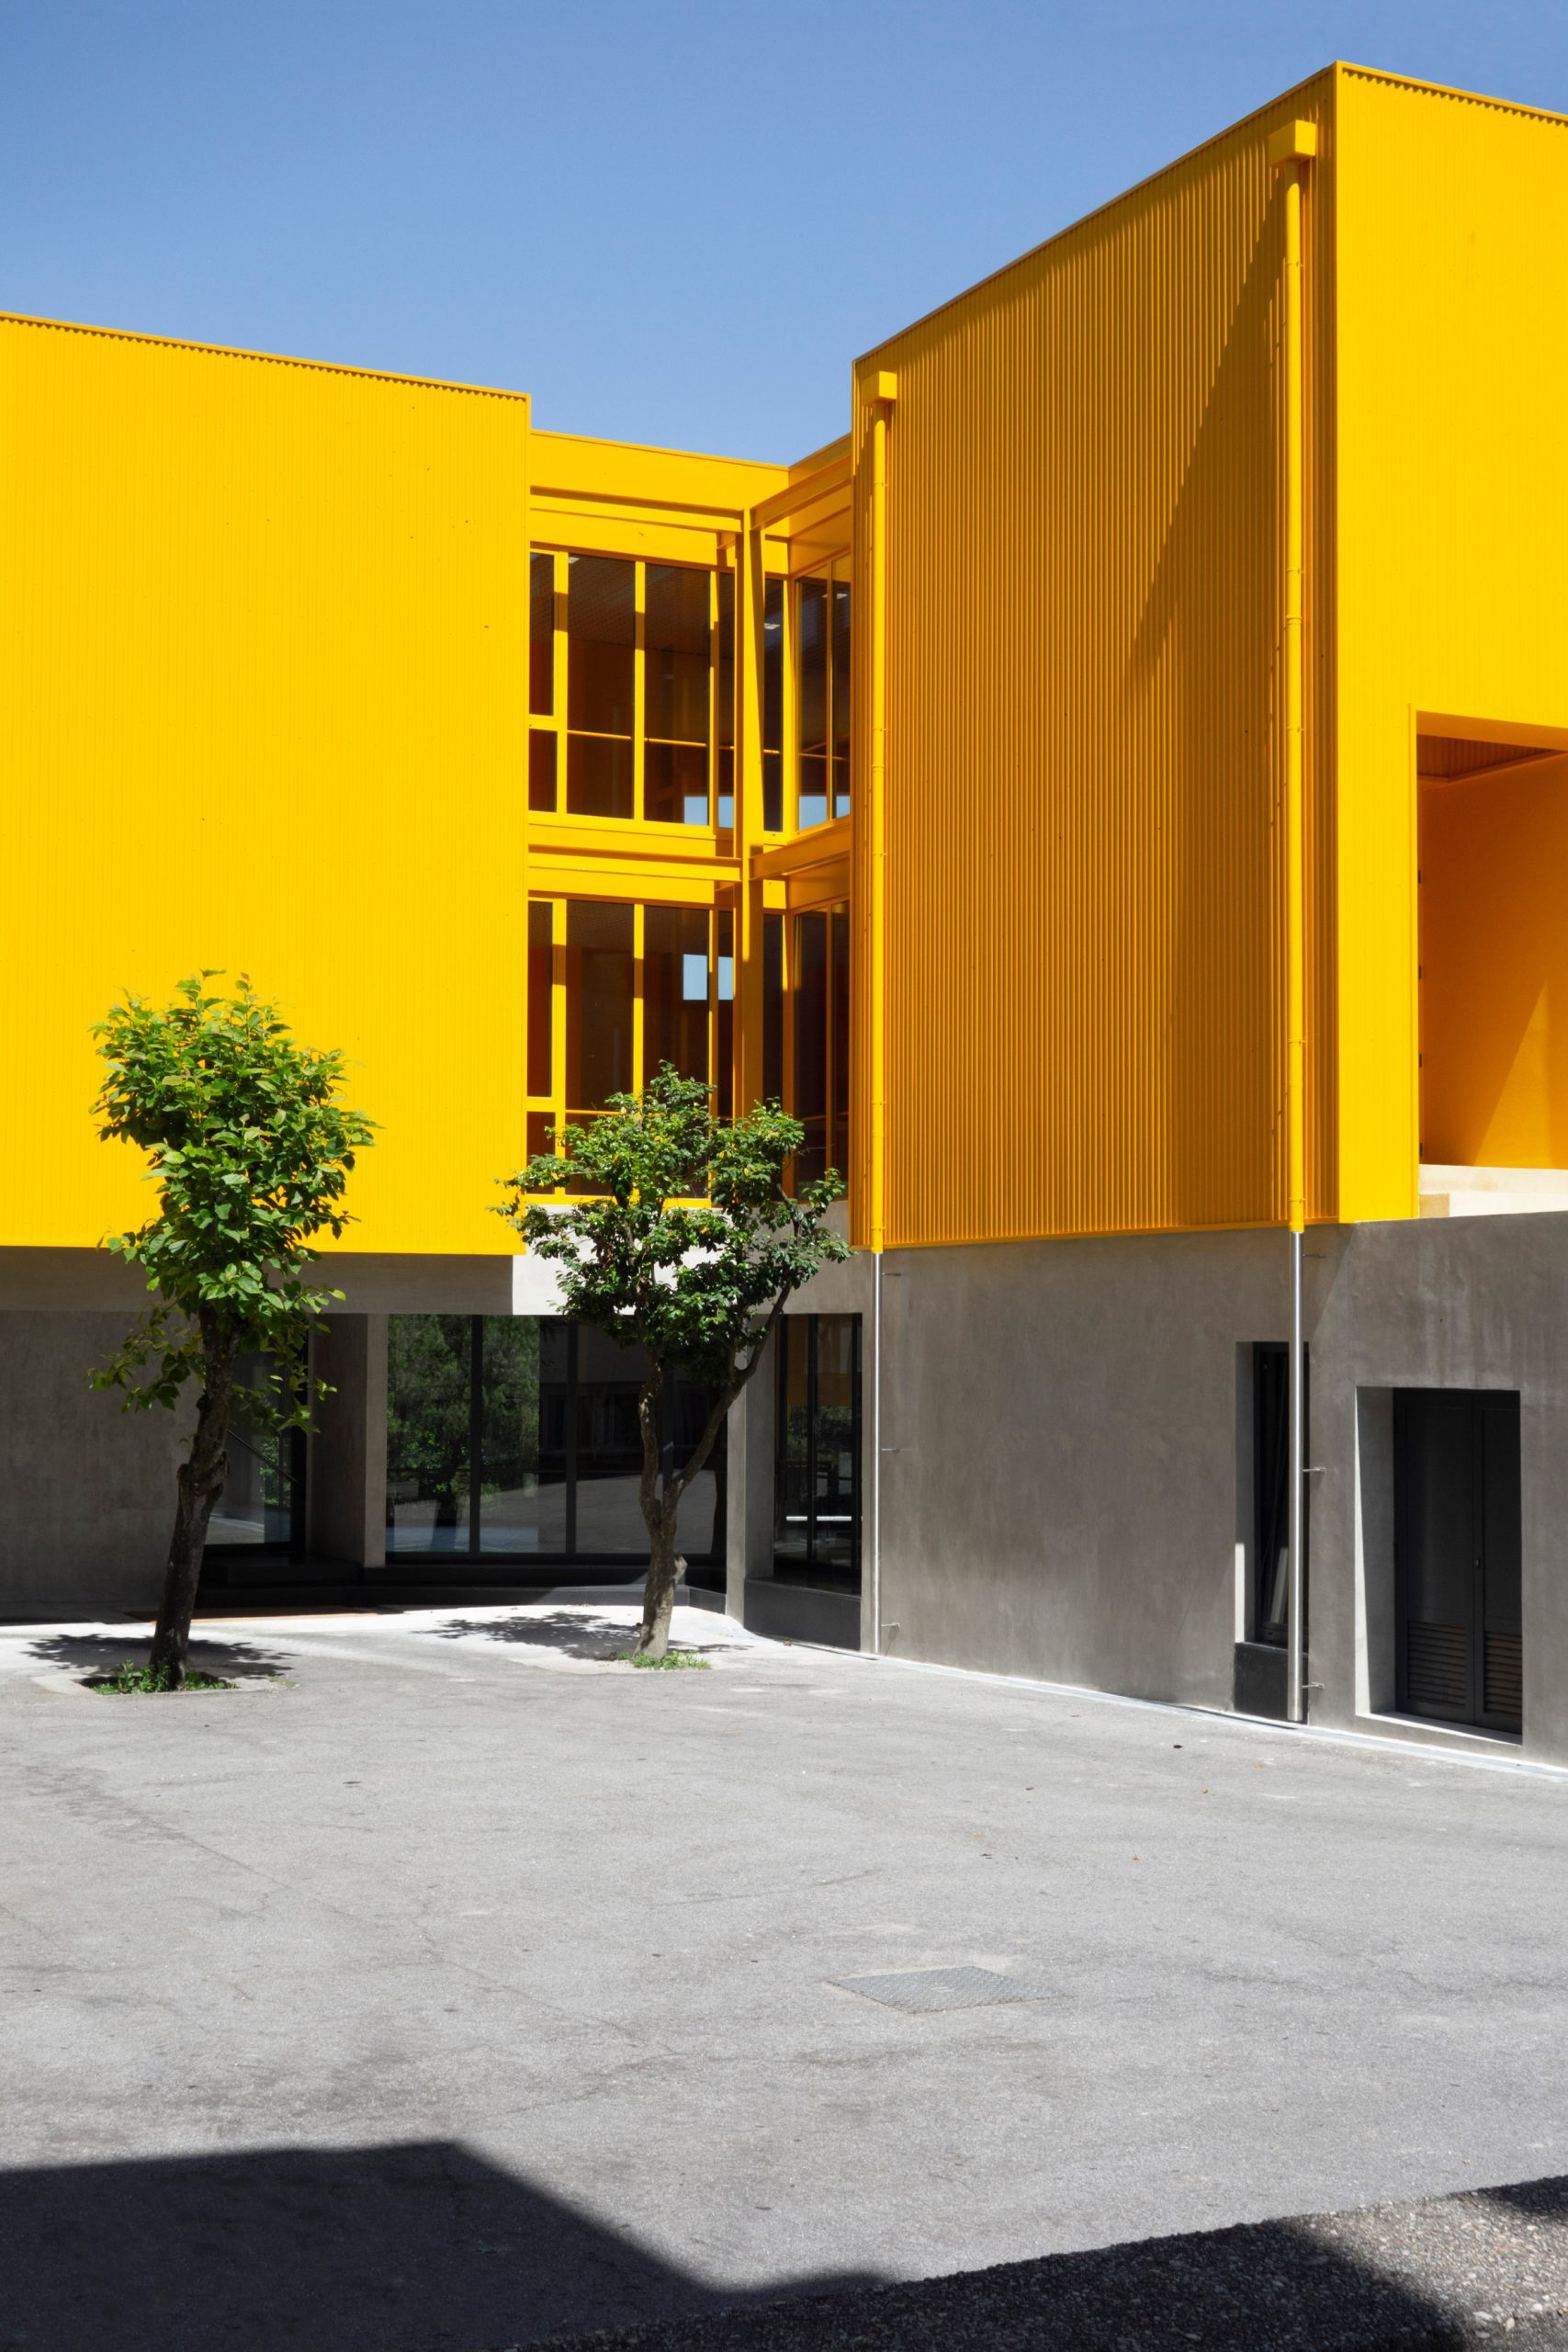 Artave music school in Caldas da Saúde, Portugal, by Aurora Arquitectos